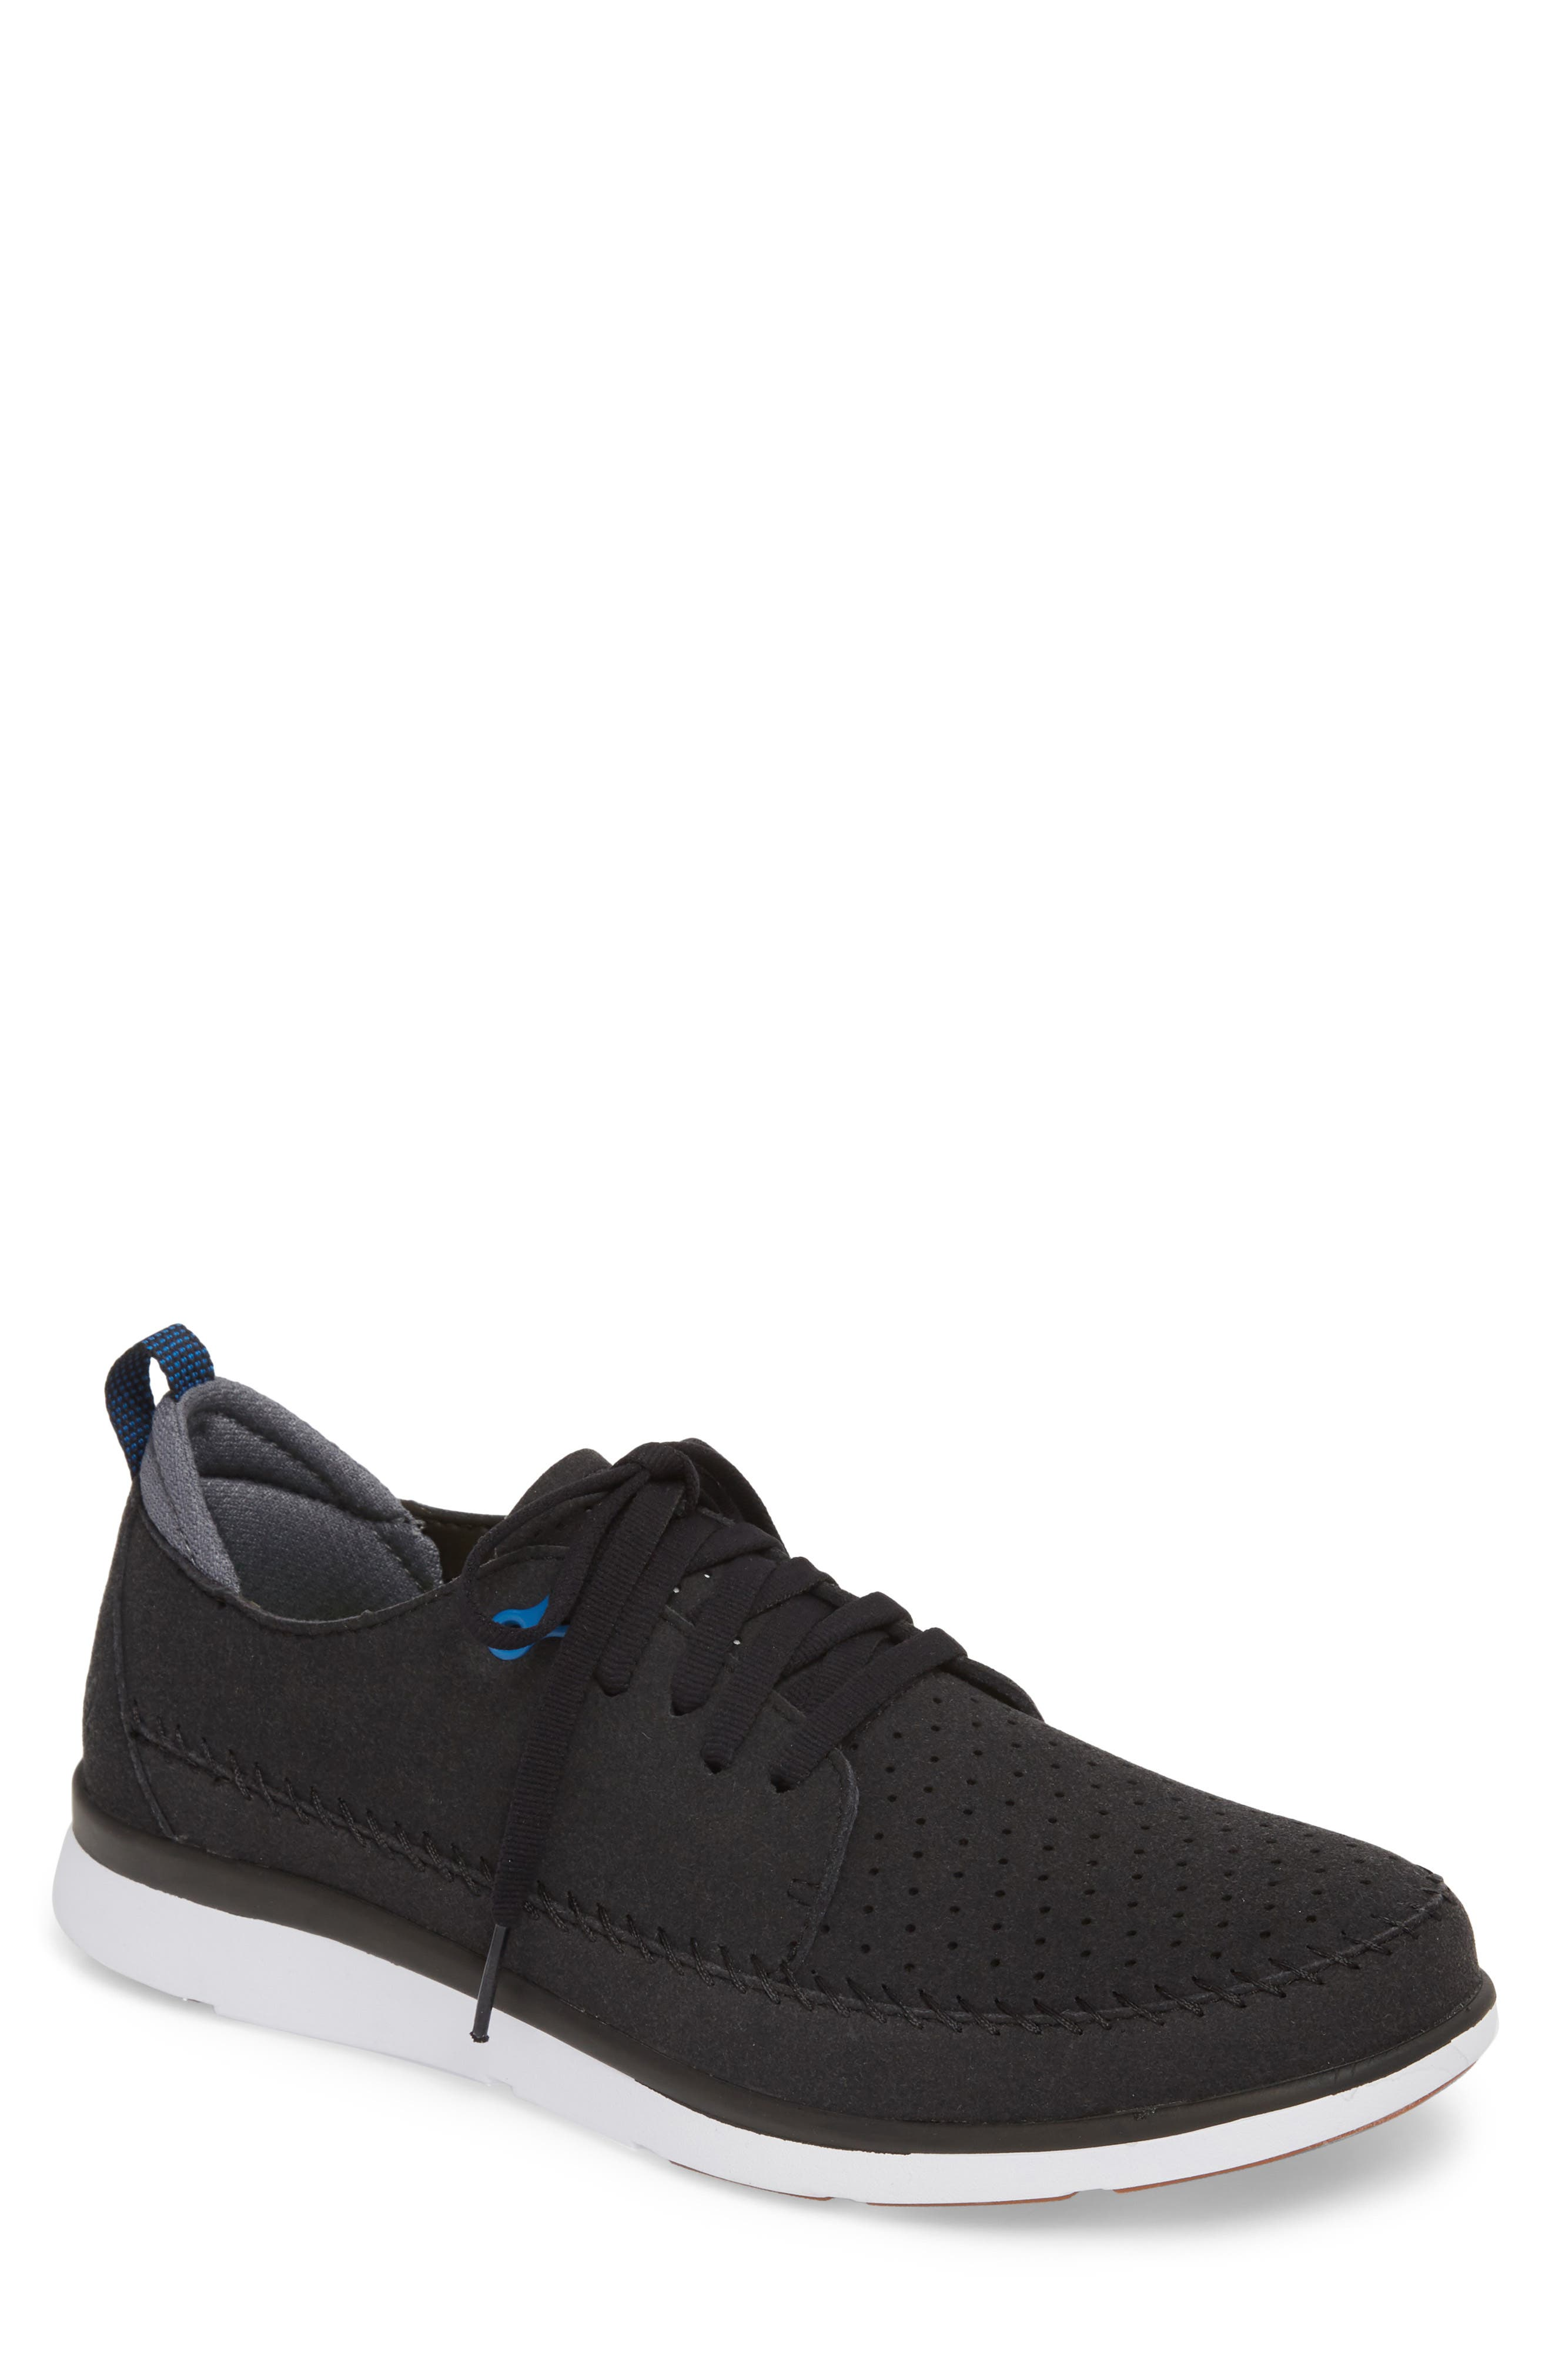 Worldwide Crane Perforated Sneaker,                         Main,                         color, BLACK